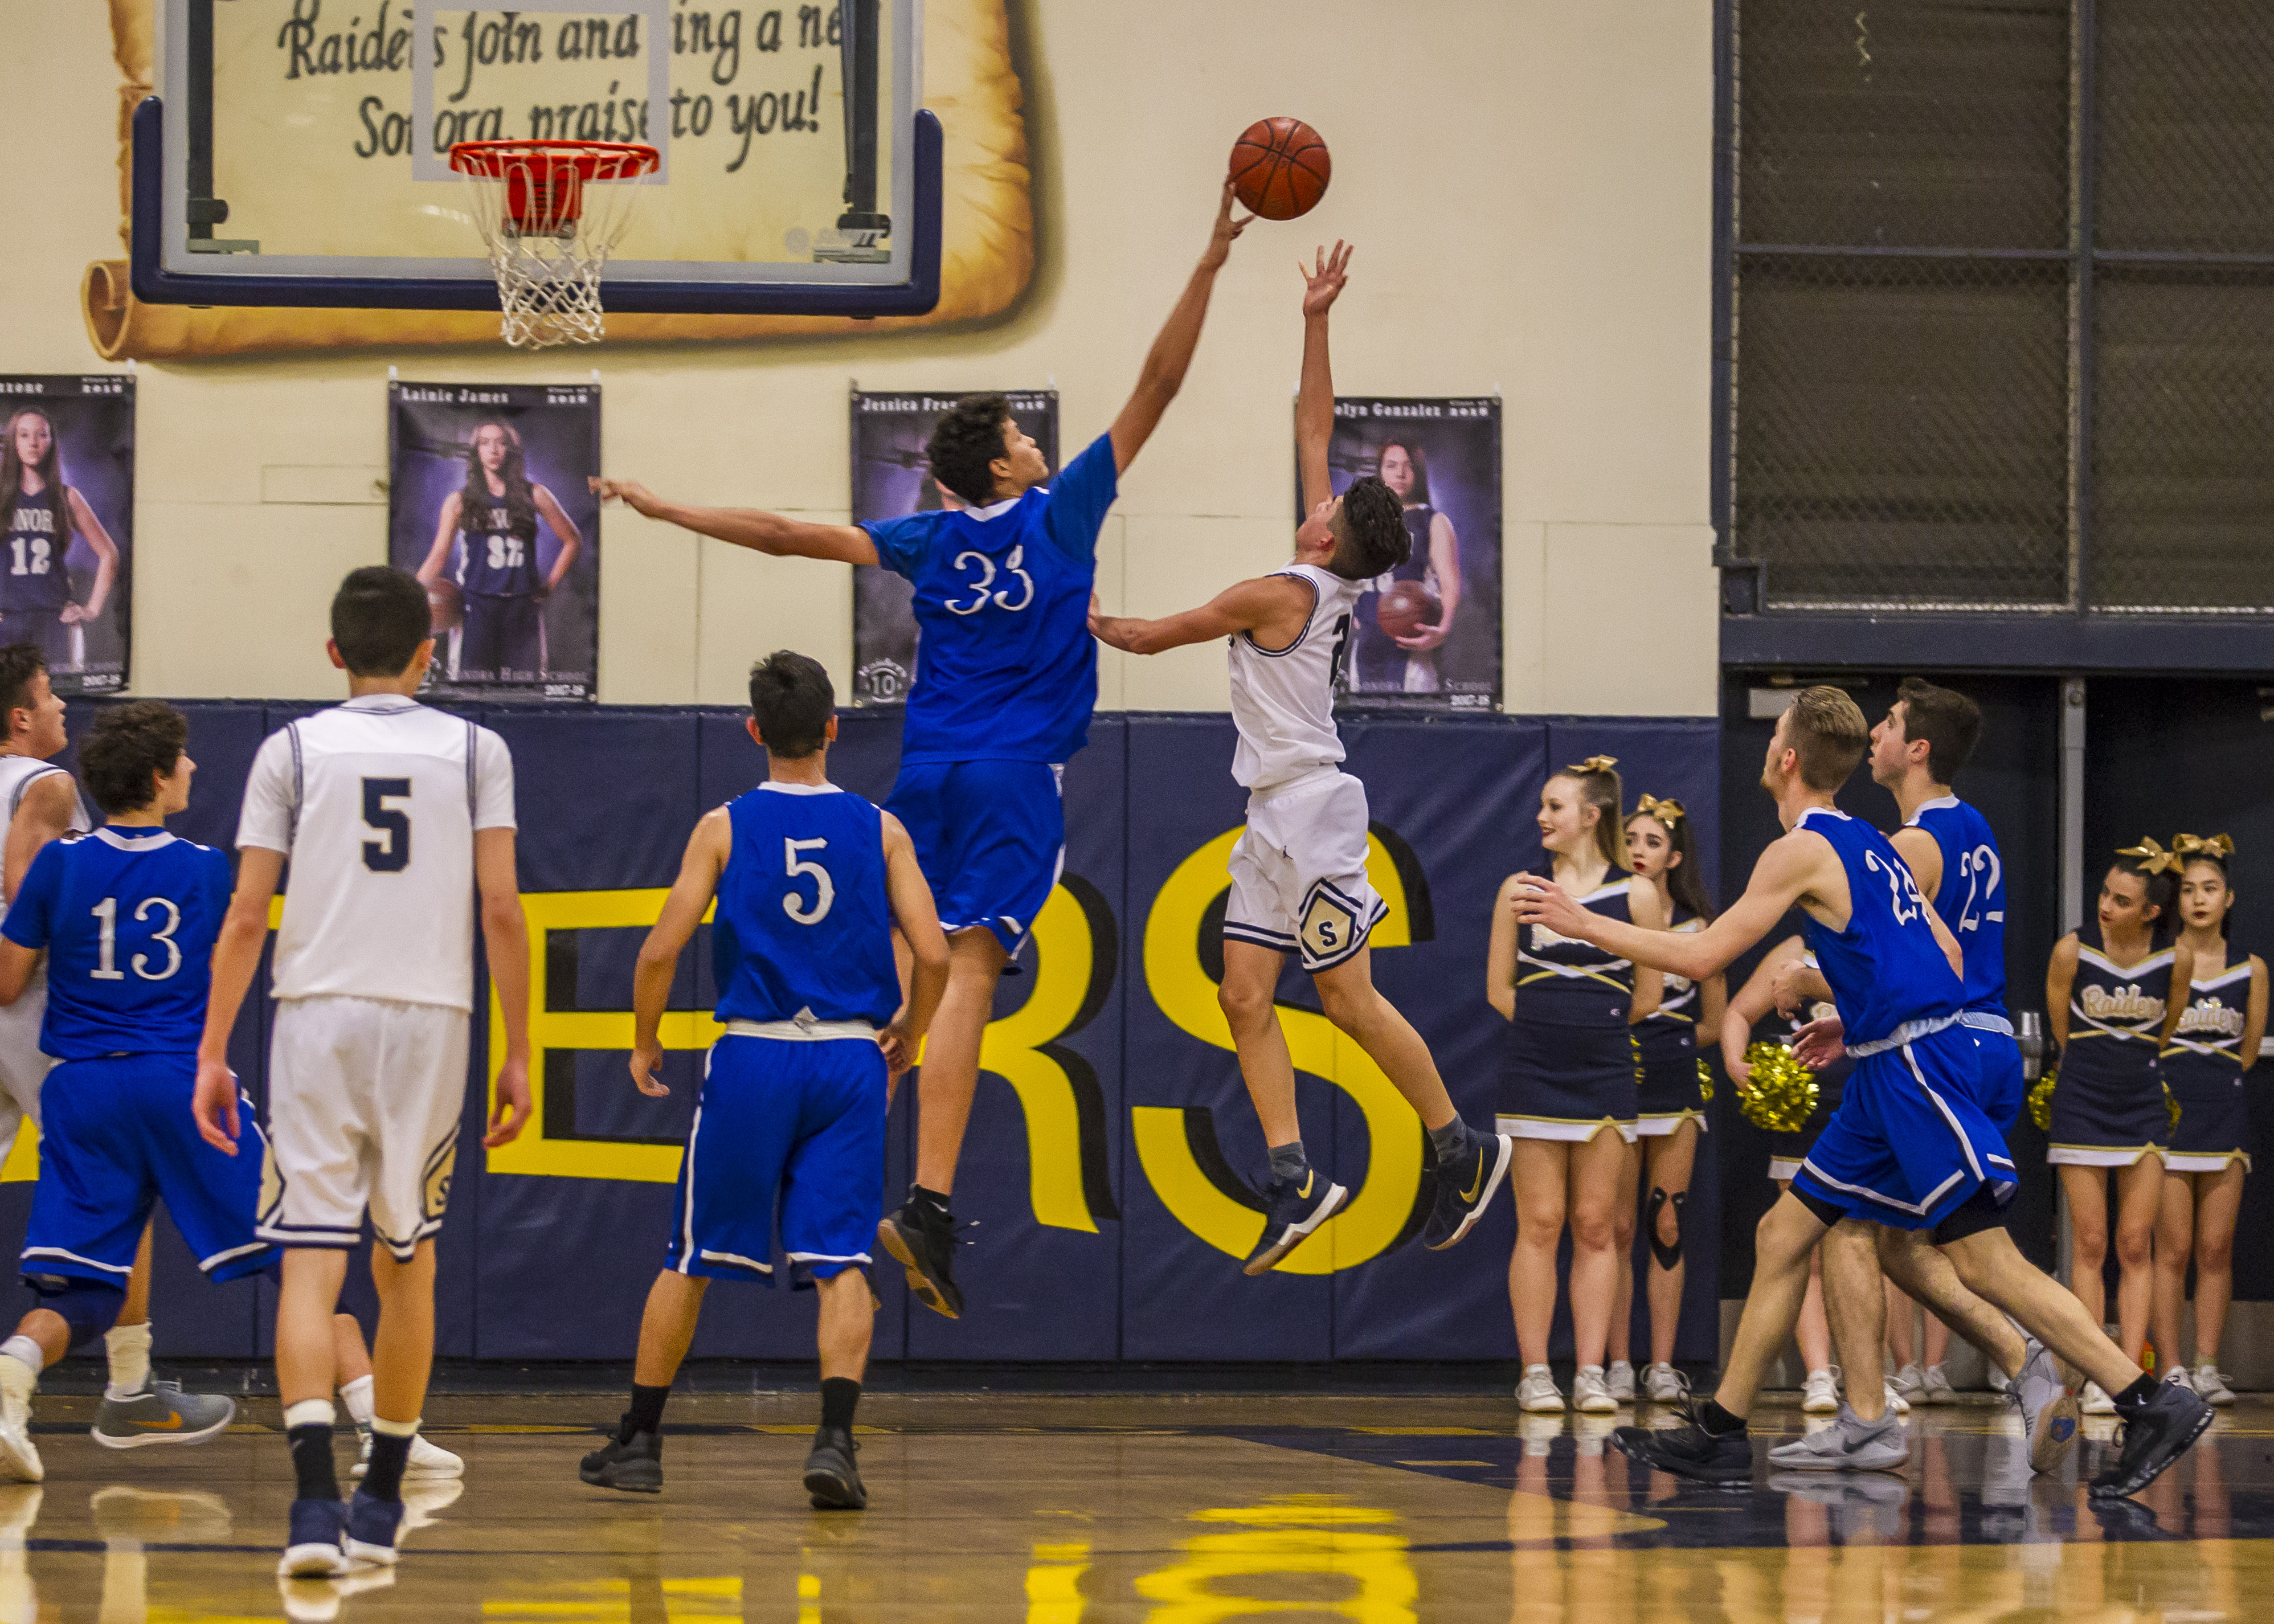 Boys Basketball: La Habra @ Westminster (11/20/18)